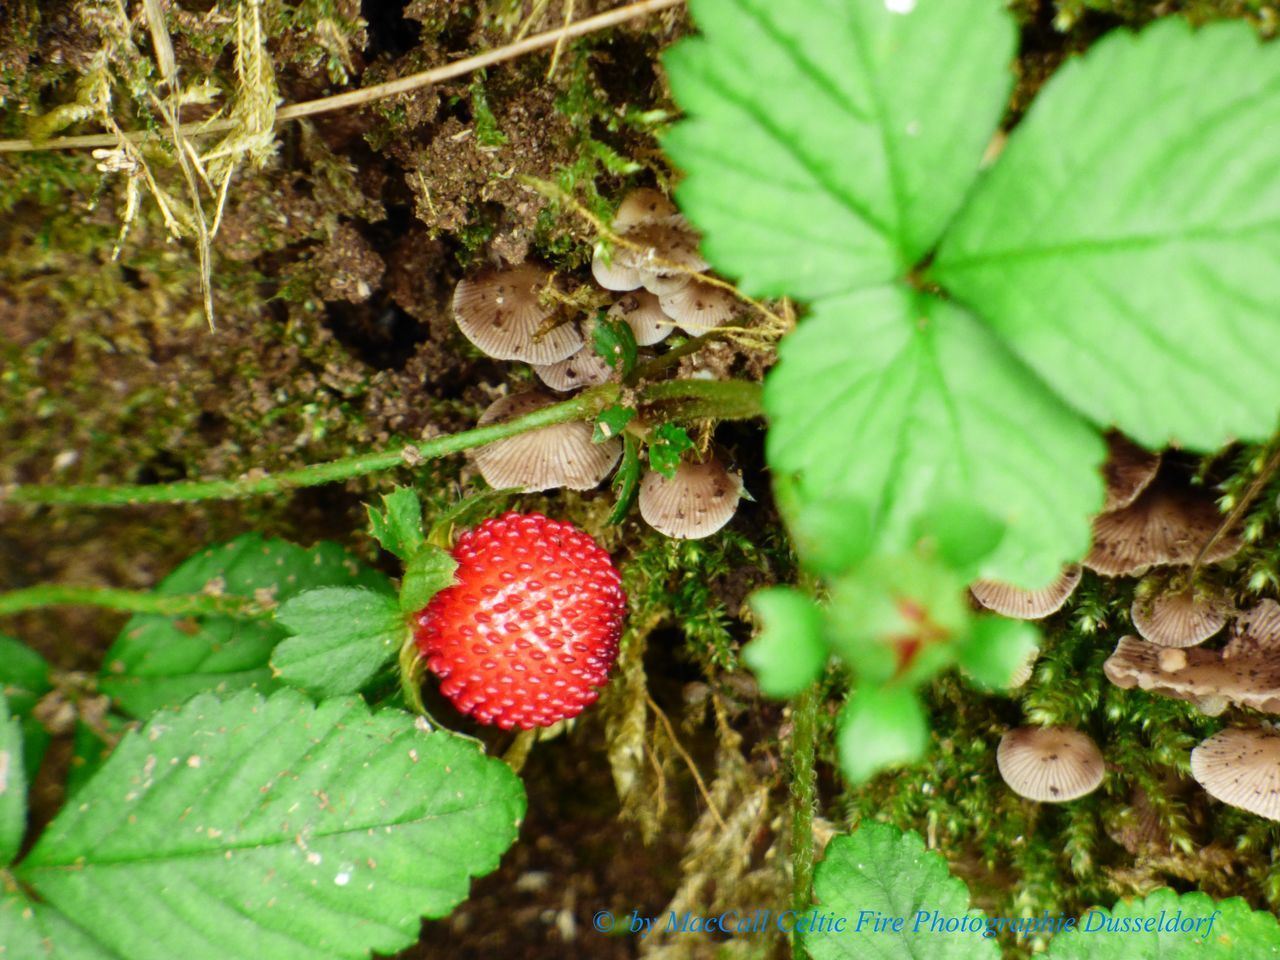 growth, leaf, nature, green color, freshness, close-up, day, no people, beauty in nature, food and drink, fruit, outdoors, plant, fragility, mushroom, fungus, food, toadstool